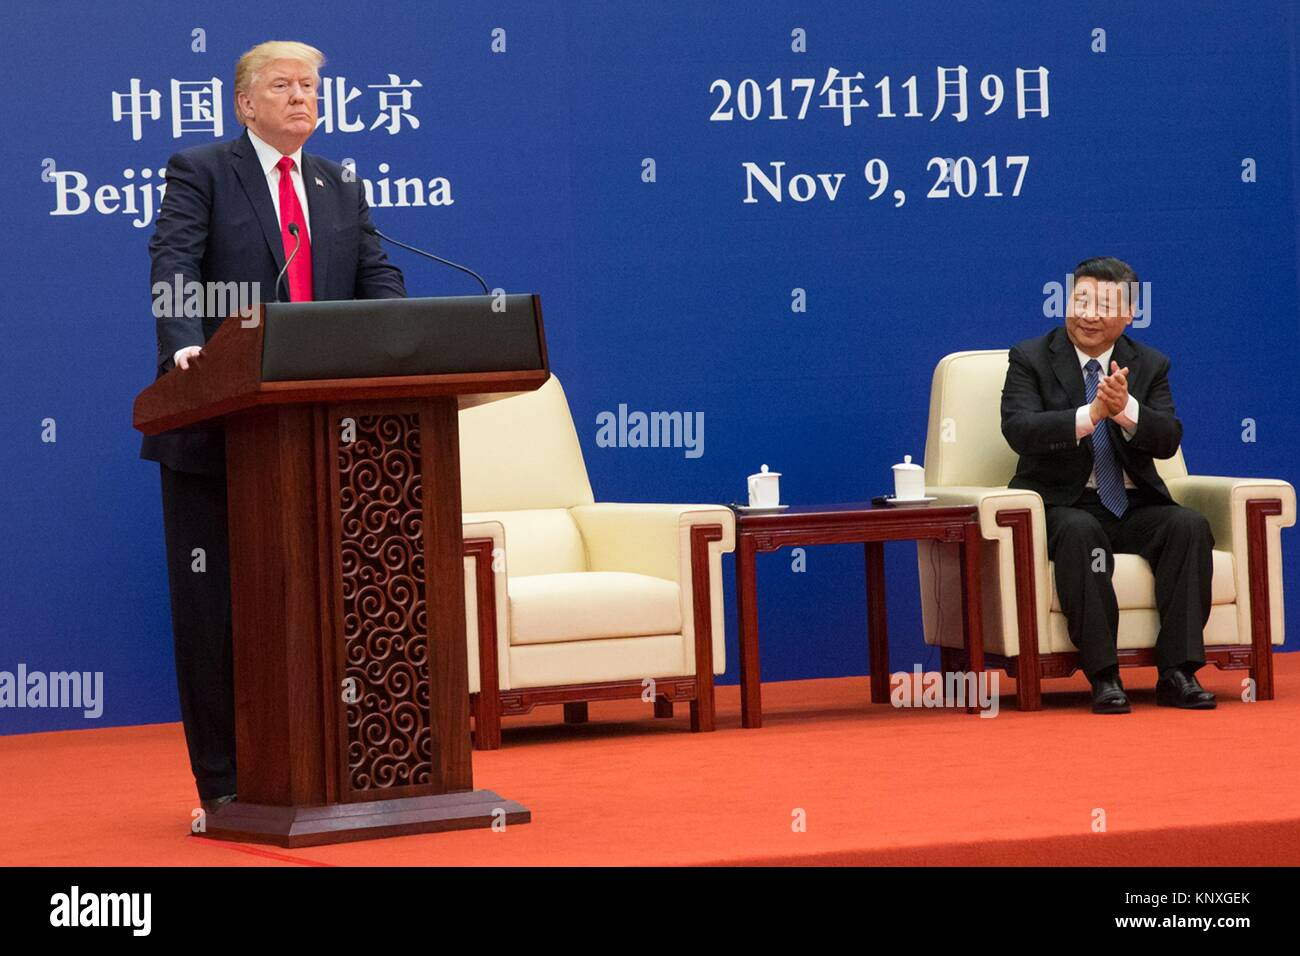 U.S President Donald Trump addresses a business event as Chinese President Xi Jinping looks on at the Great Hall - Stock Image